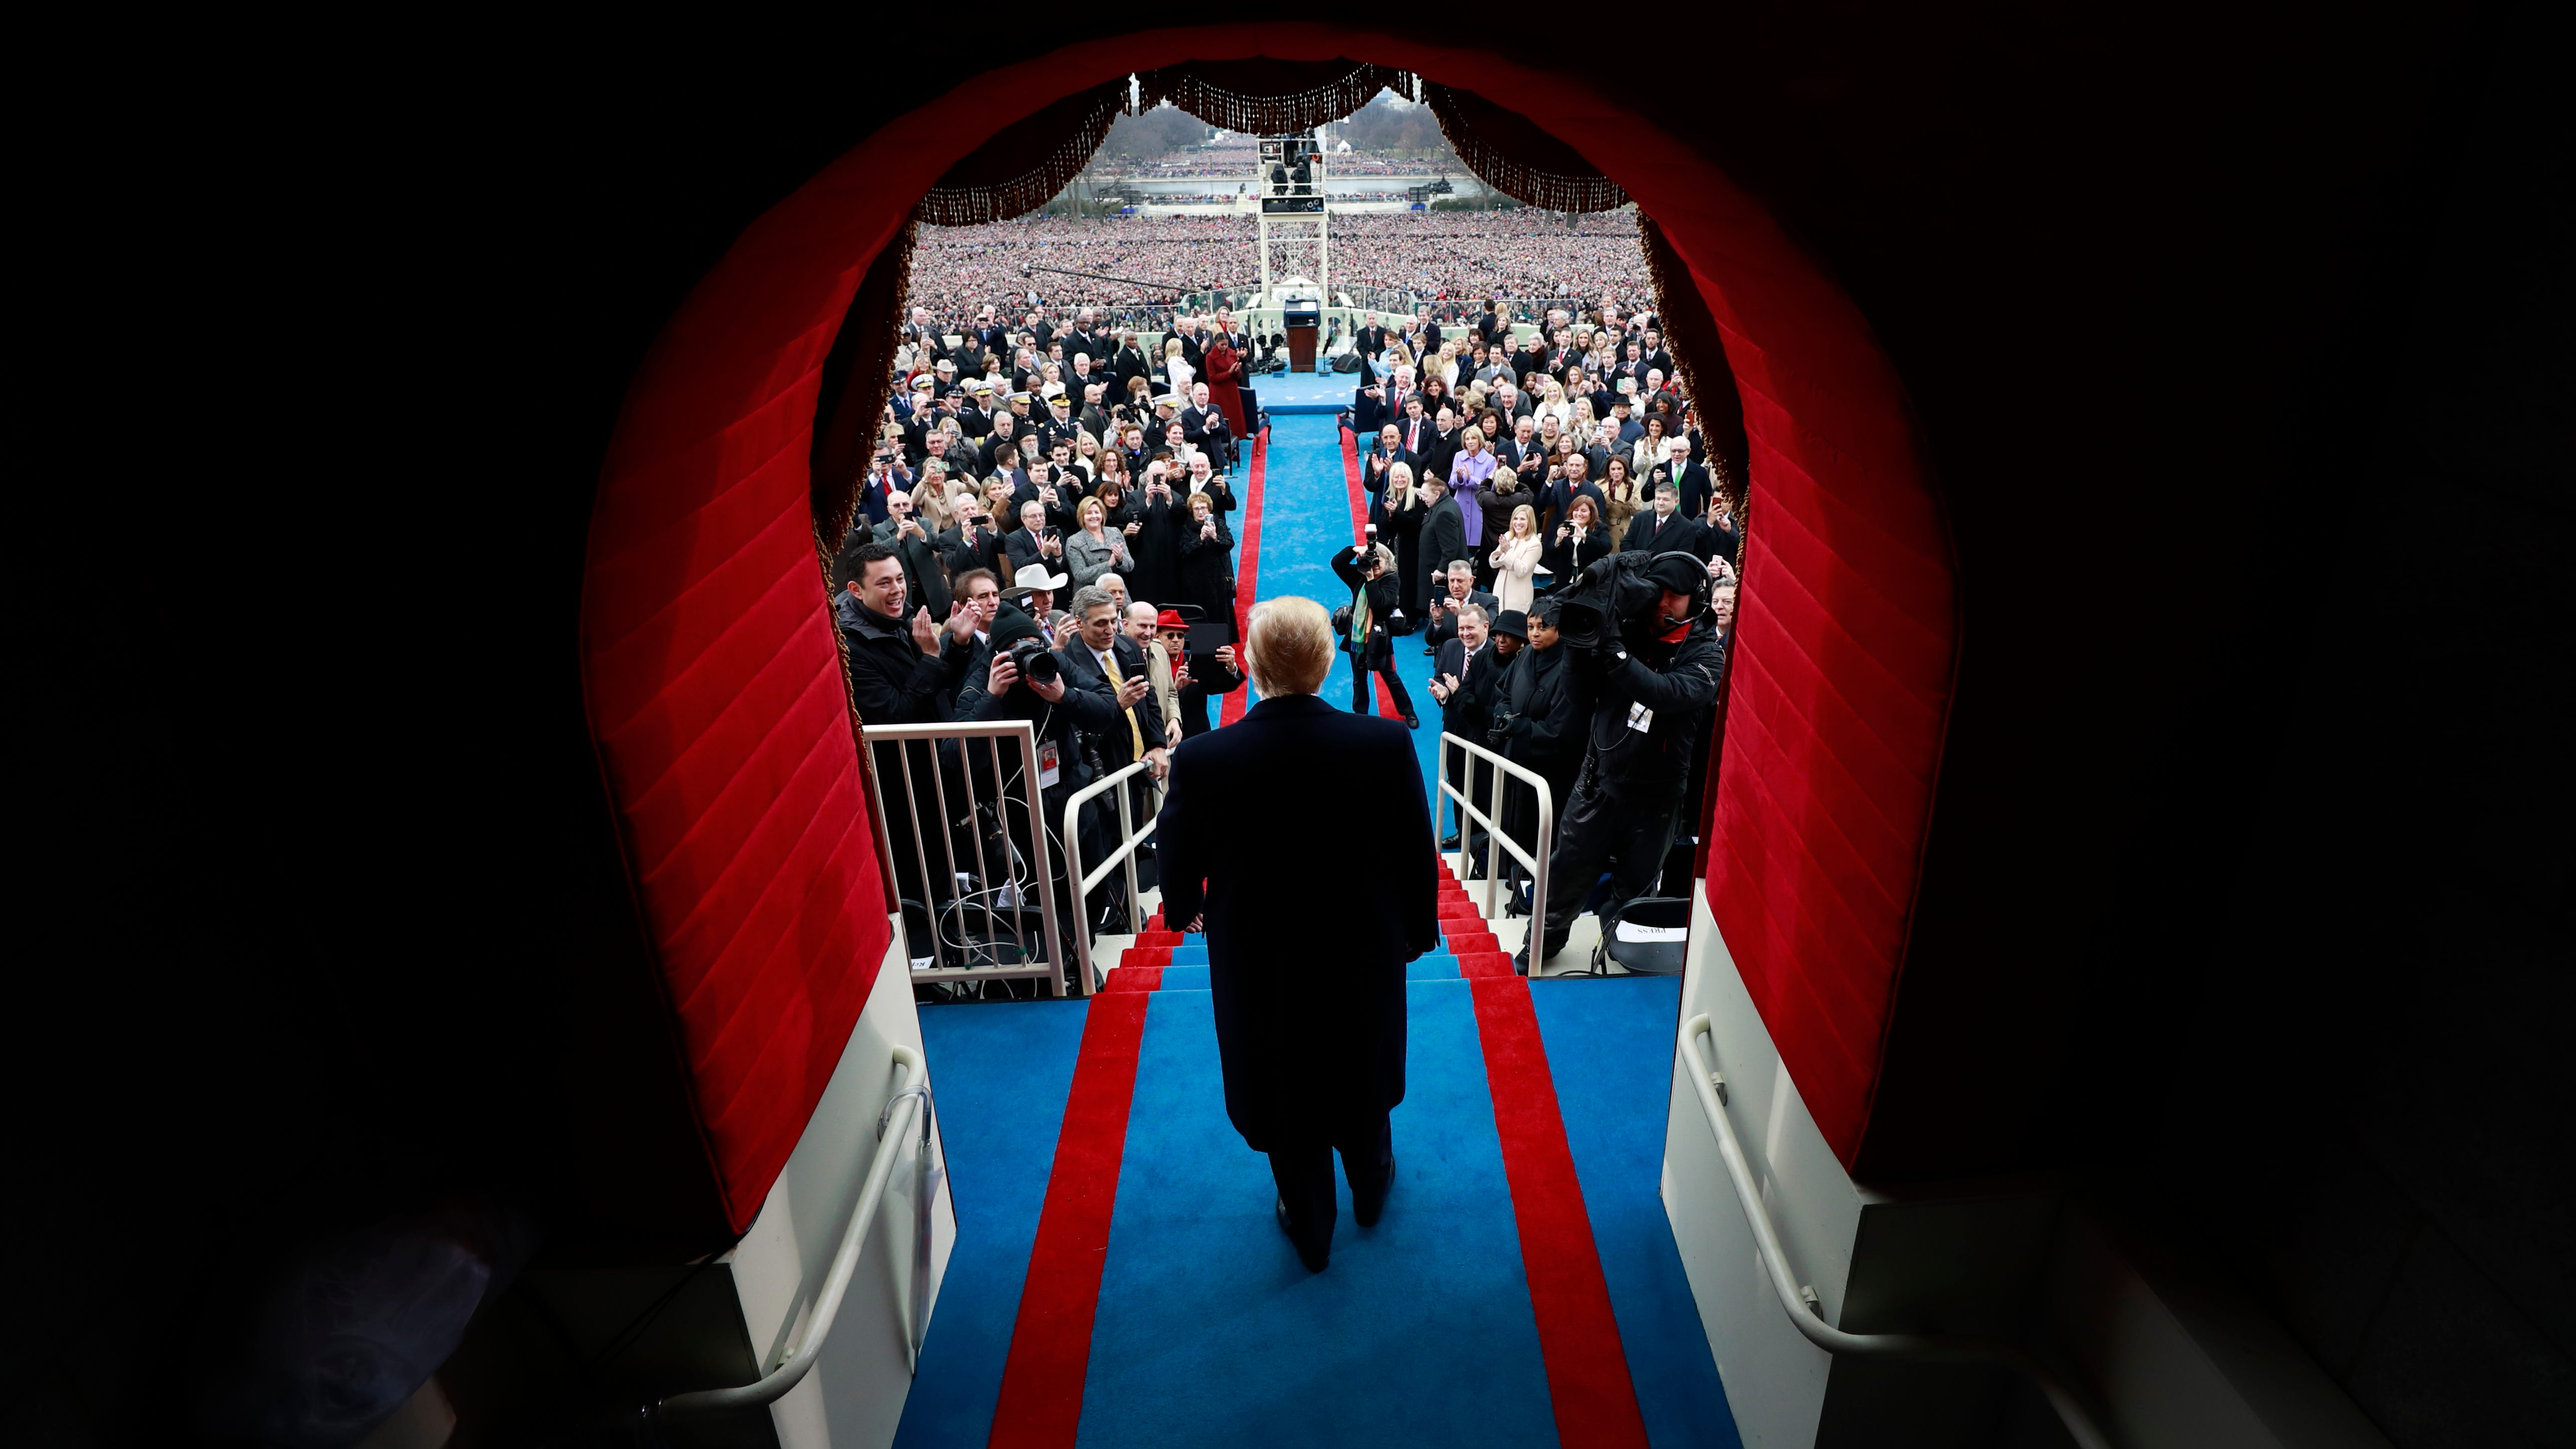 NYTING JANUARY 20, 2017. WASHINGTON, D.C. President-elect Donald J. Trump arrive at the inauguration of Donald J. Trump at the United States Capitol on Friday. NYTCREDIT: Doug Mills/The New York Times (Via OlyDrop)